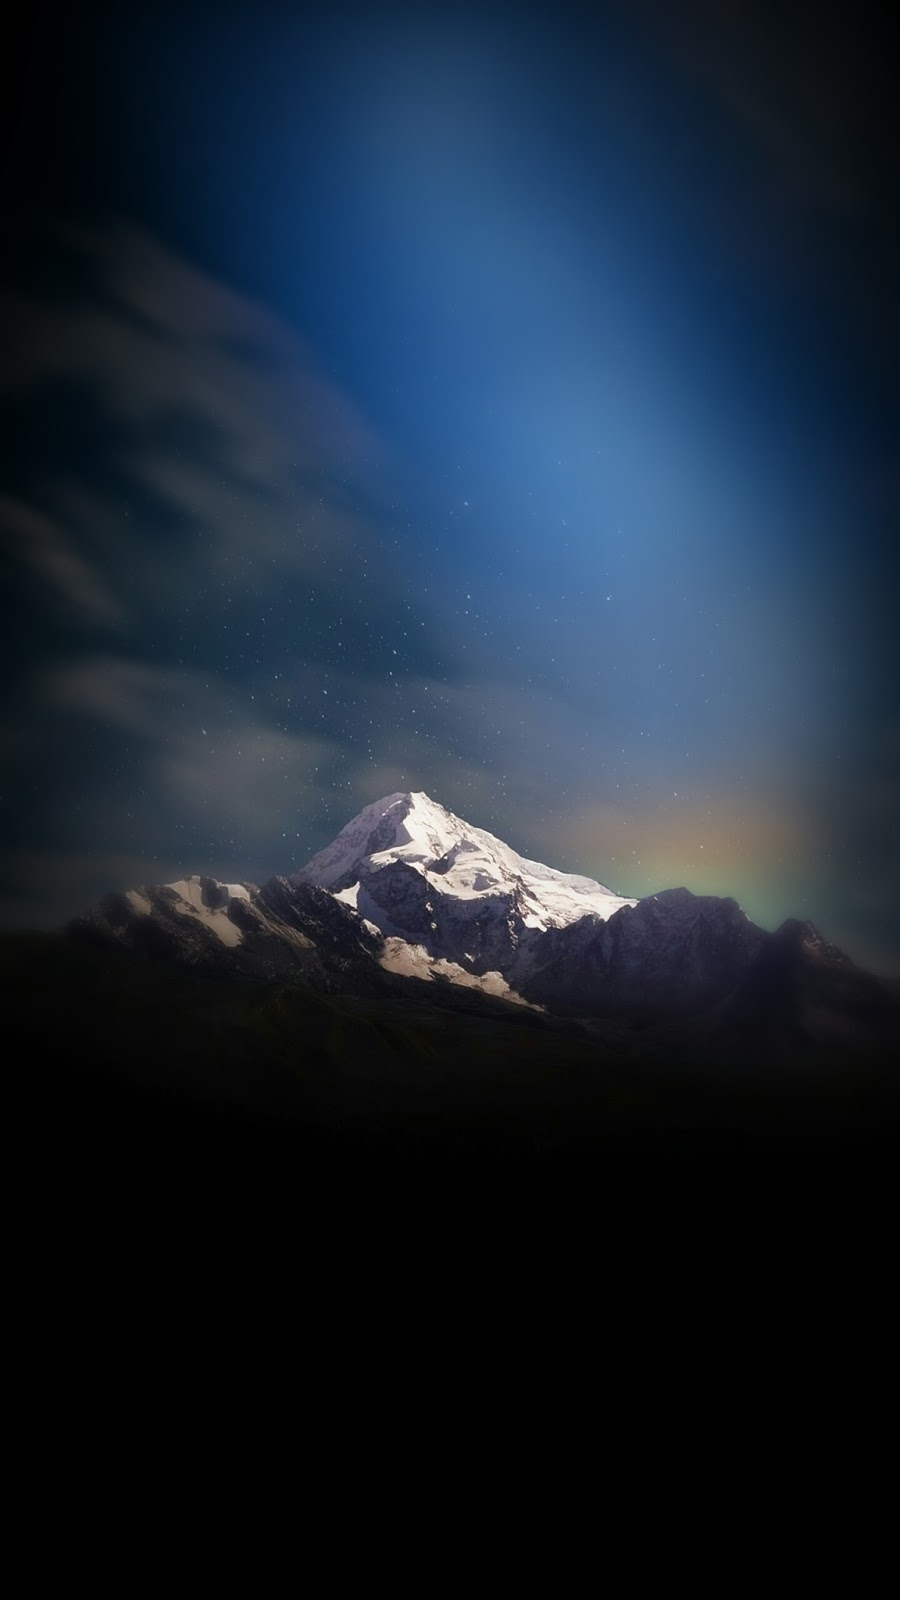 4k Phone Wallpapers